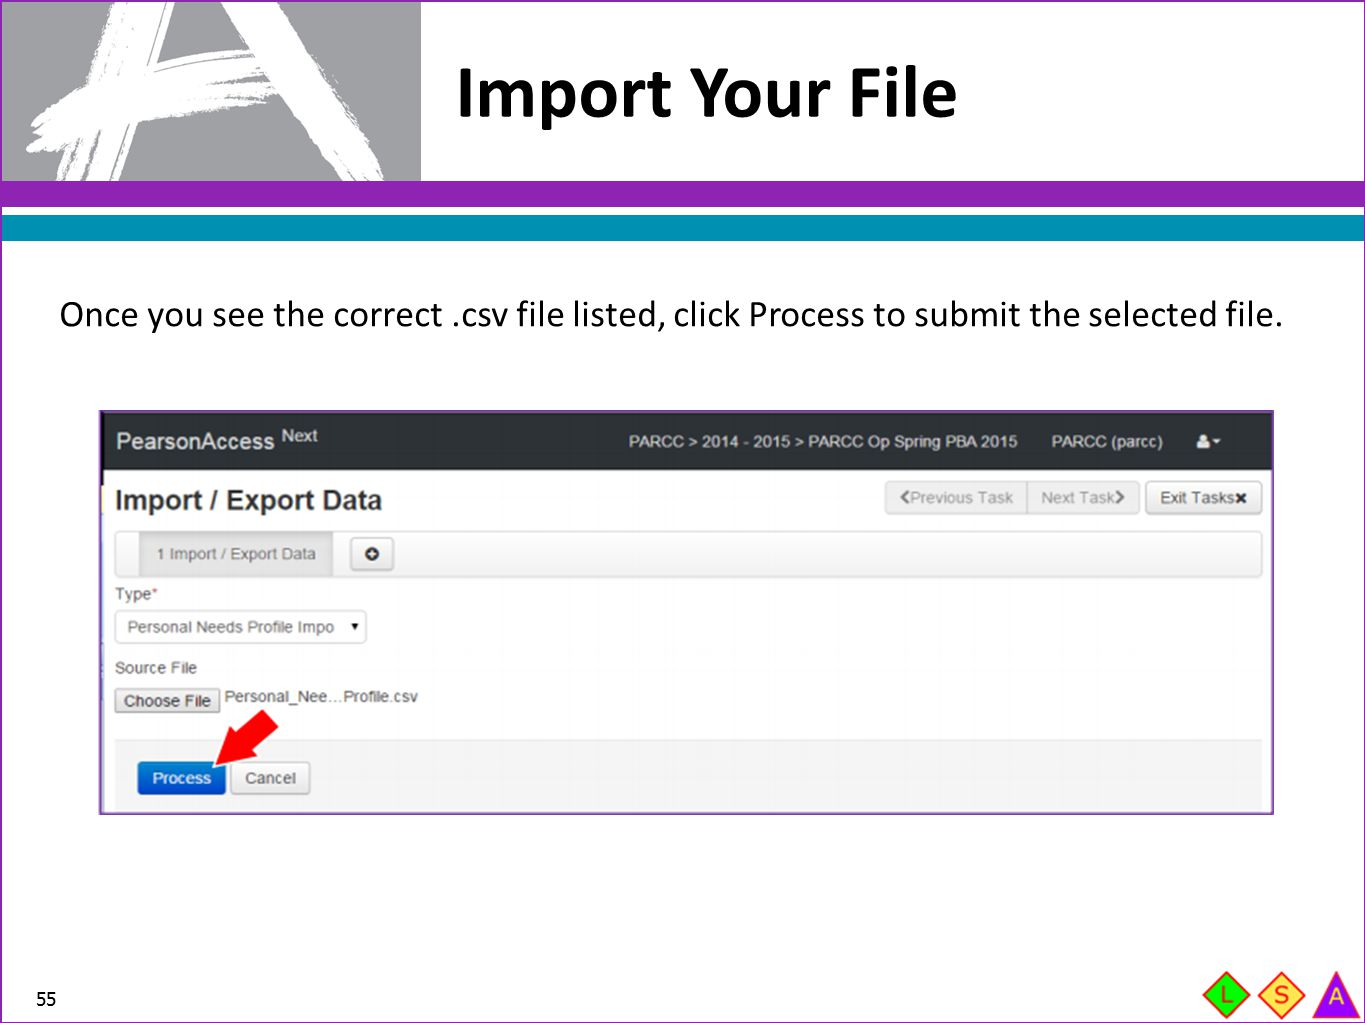 Import Your File Once you see the correct .csv file listed, click Process to submit the selected file.